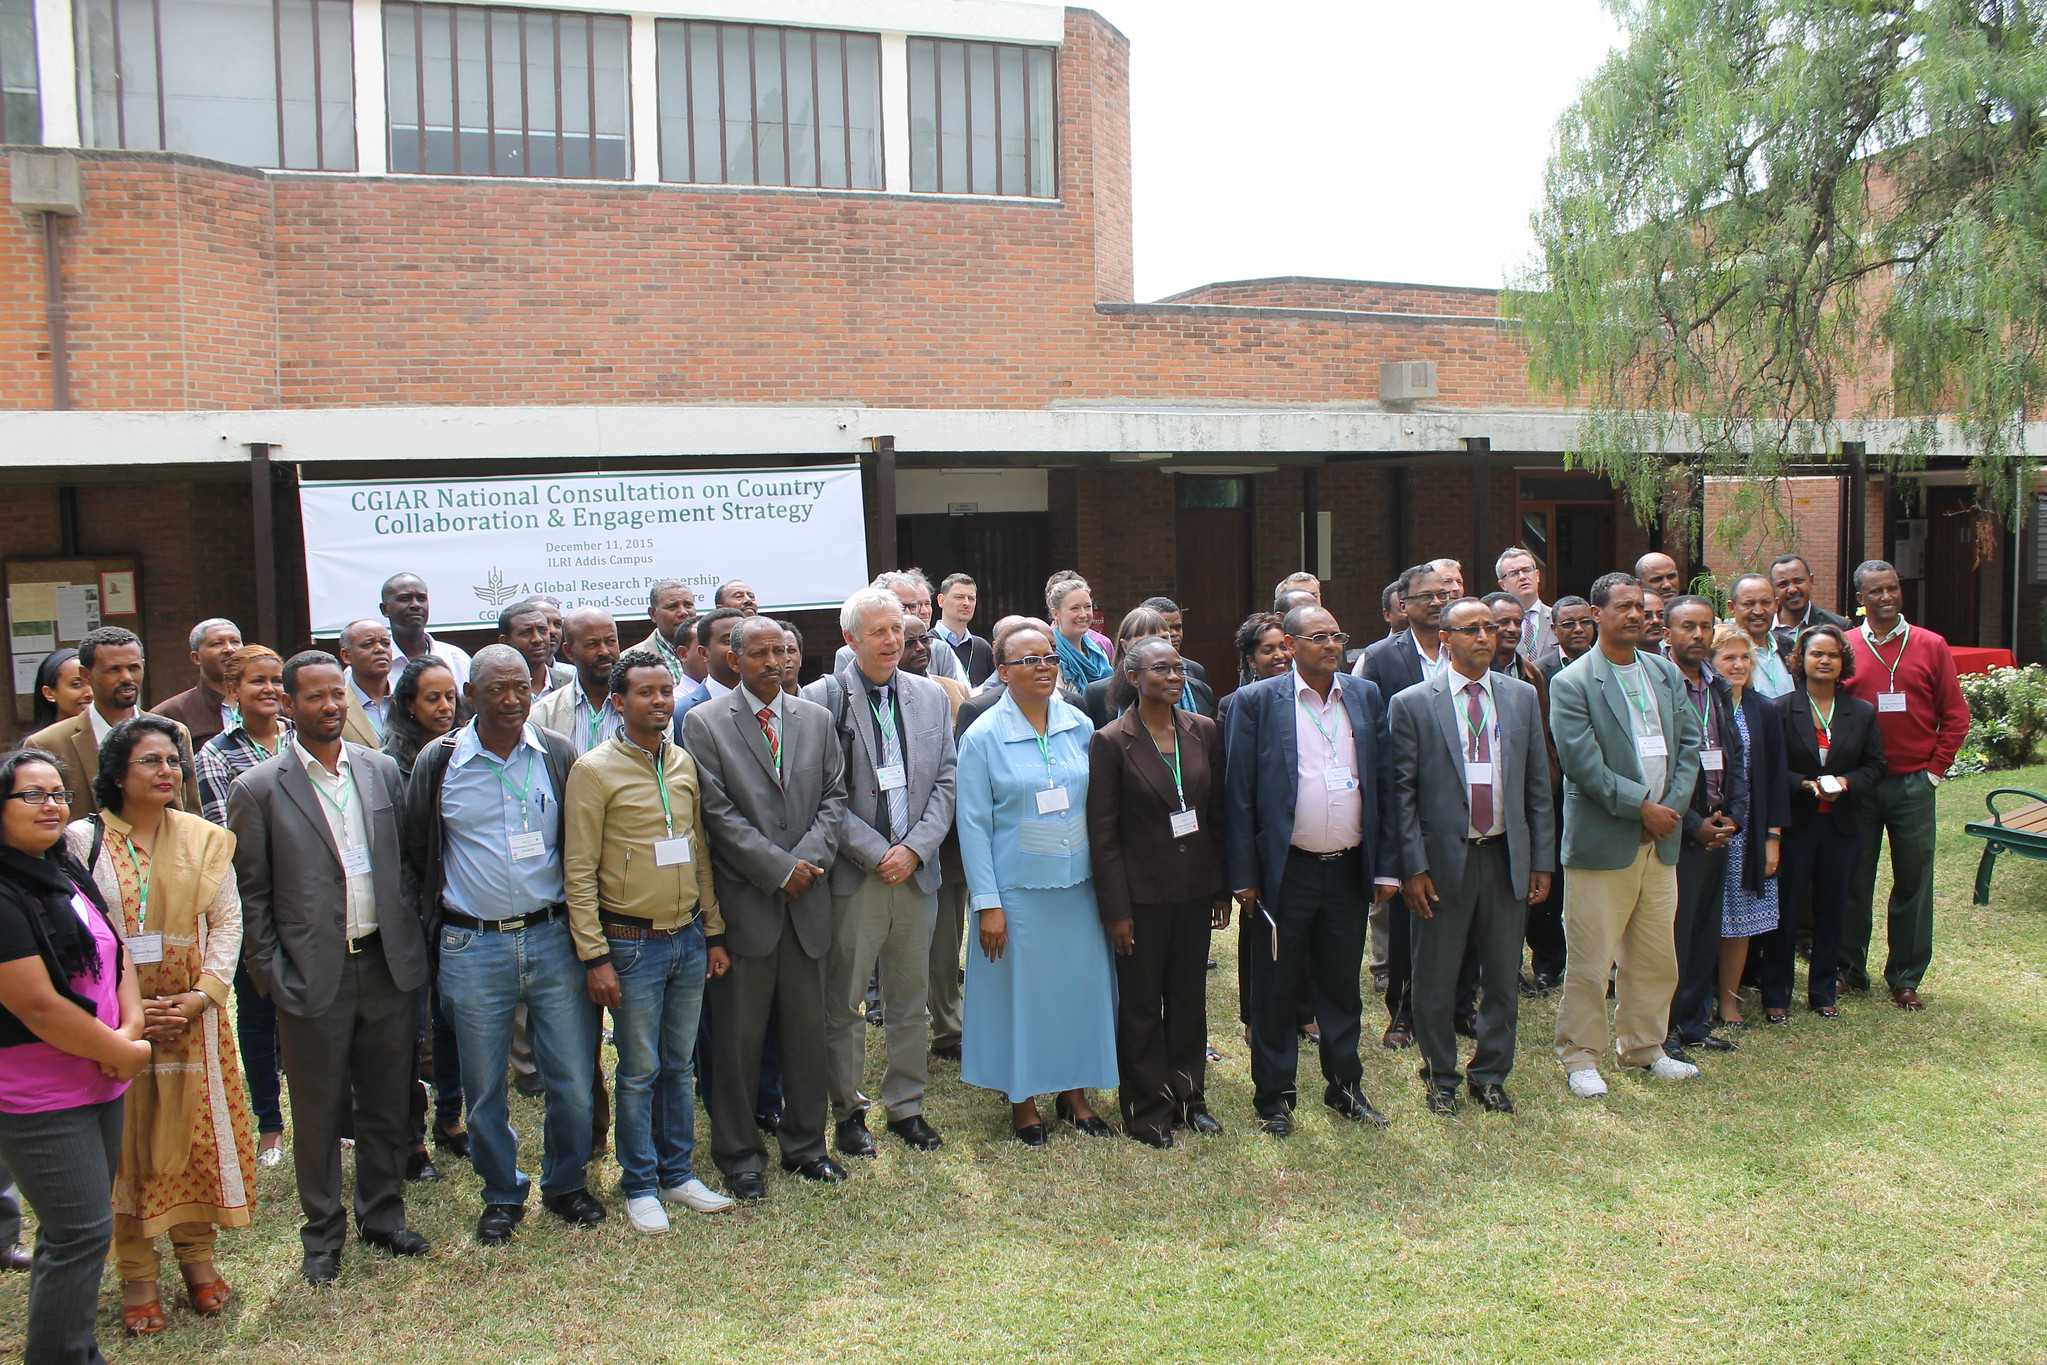 Participants of the national consultation meeting